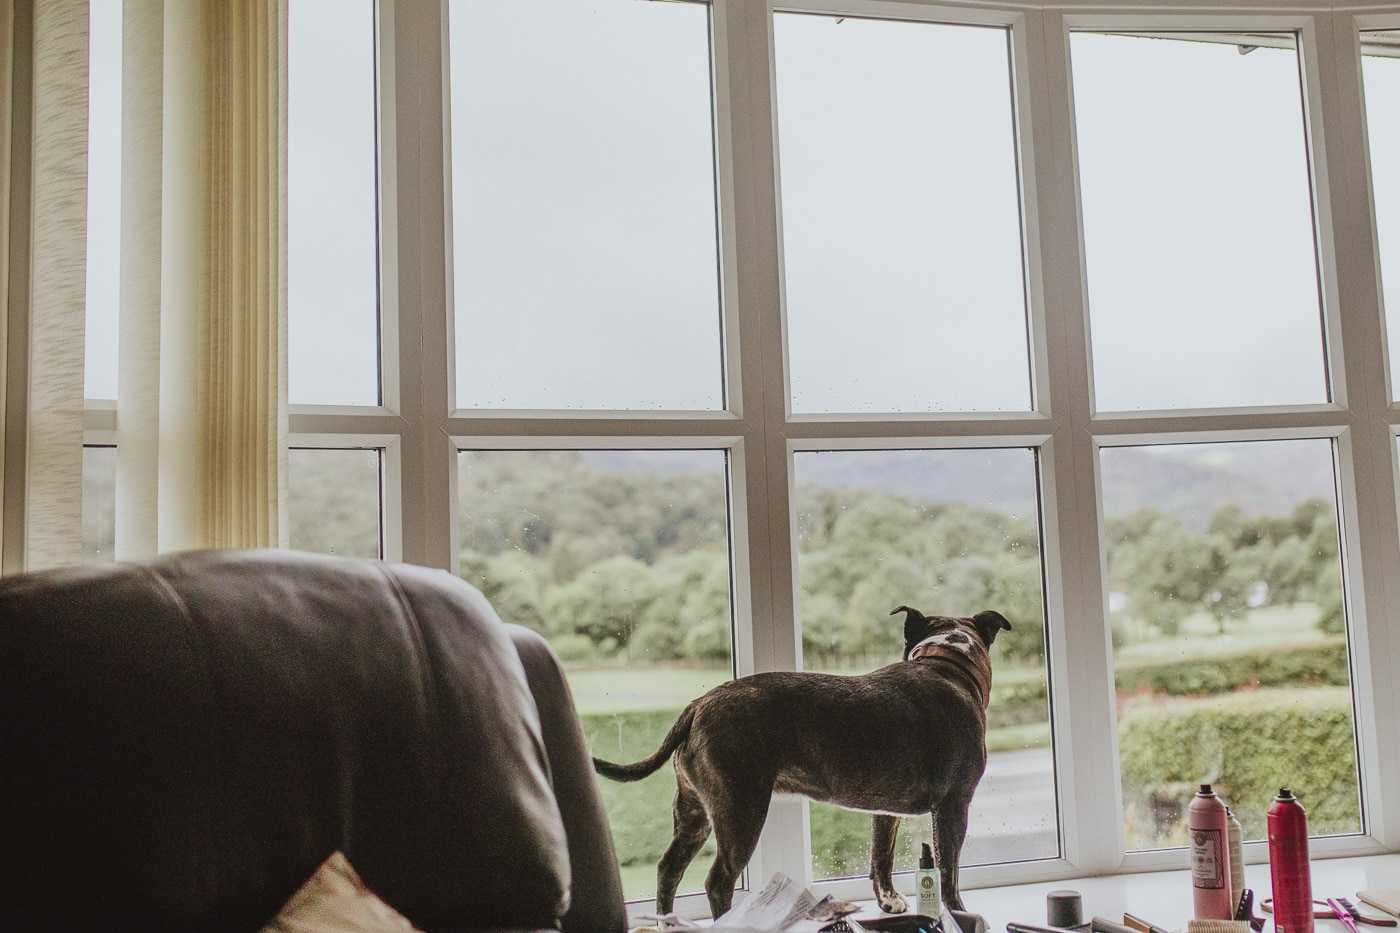 Dog standing and looking out of window for Cumbria wedding by Joshua Wyborn